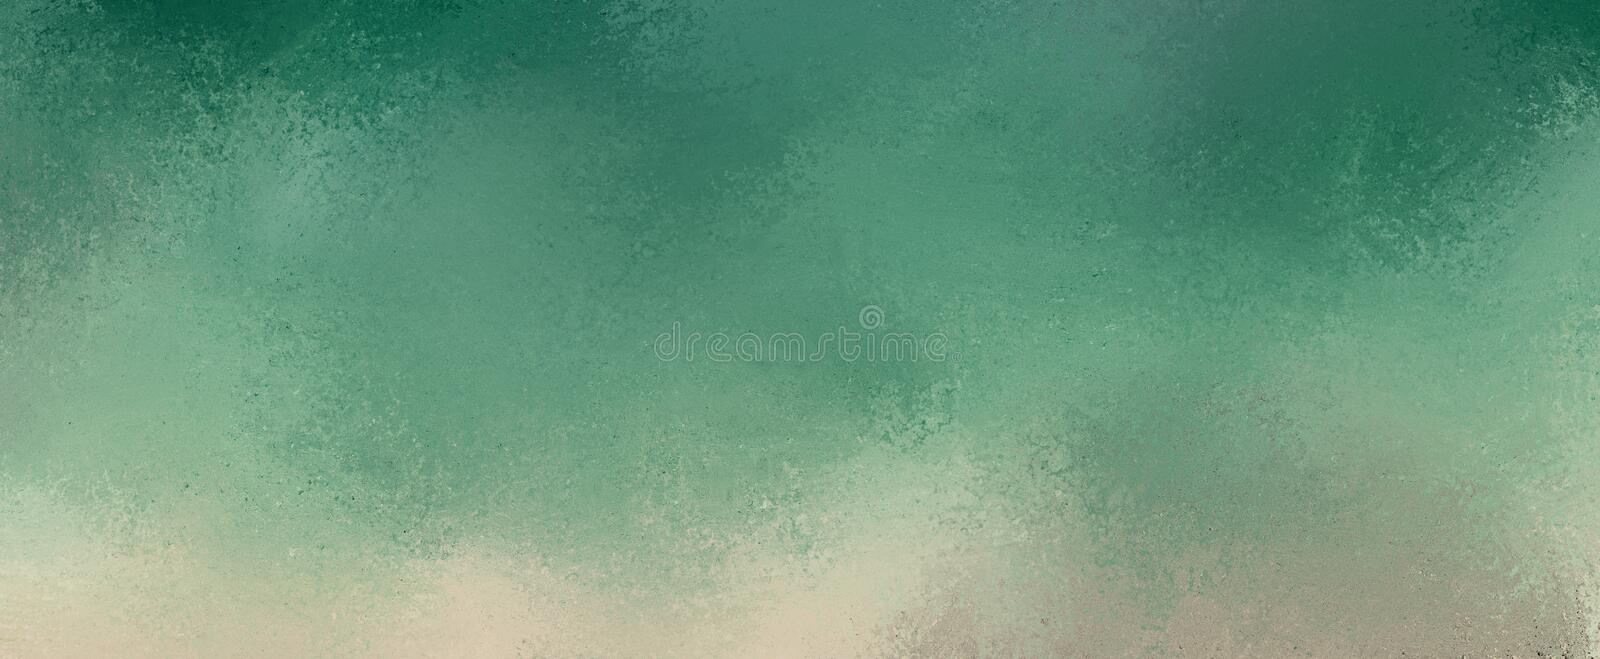 Teal blue and green background with gray and beige grunge border design in soft textured grunge stock images